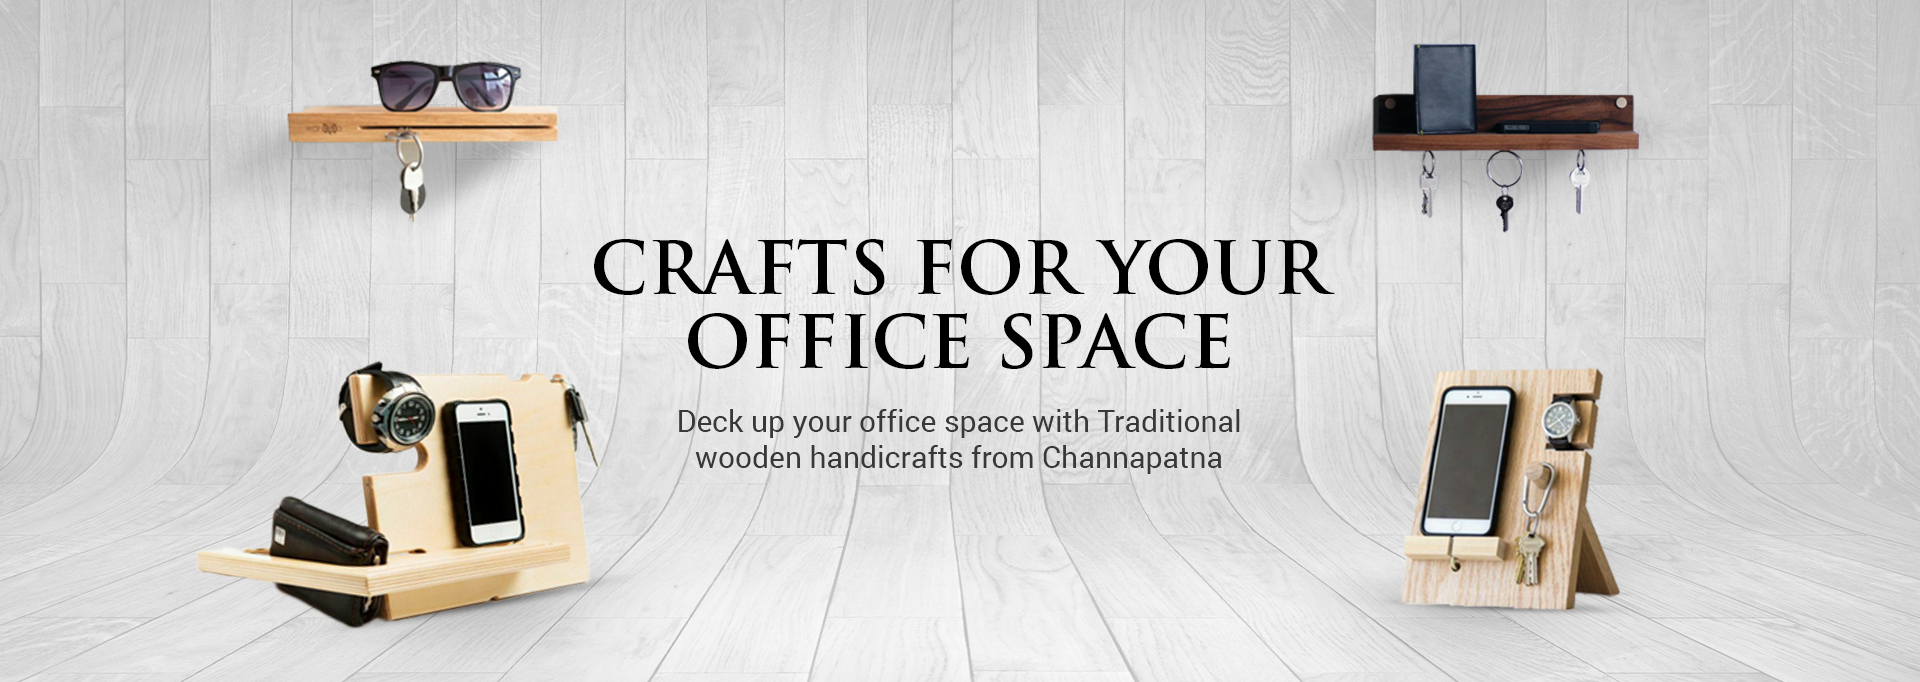 Crafts for Office Space